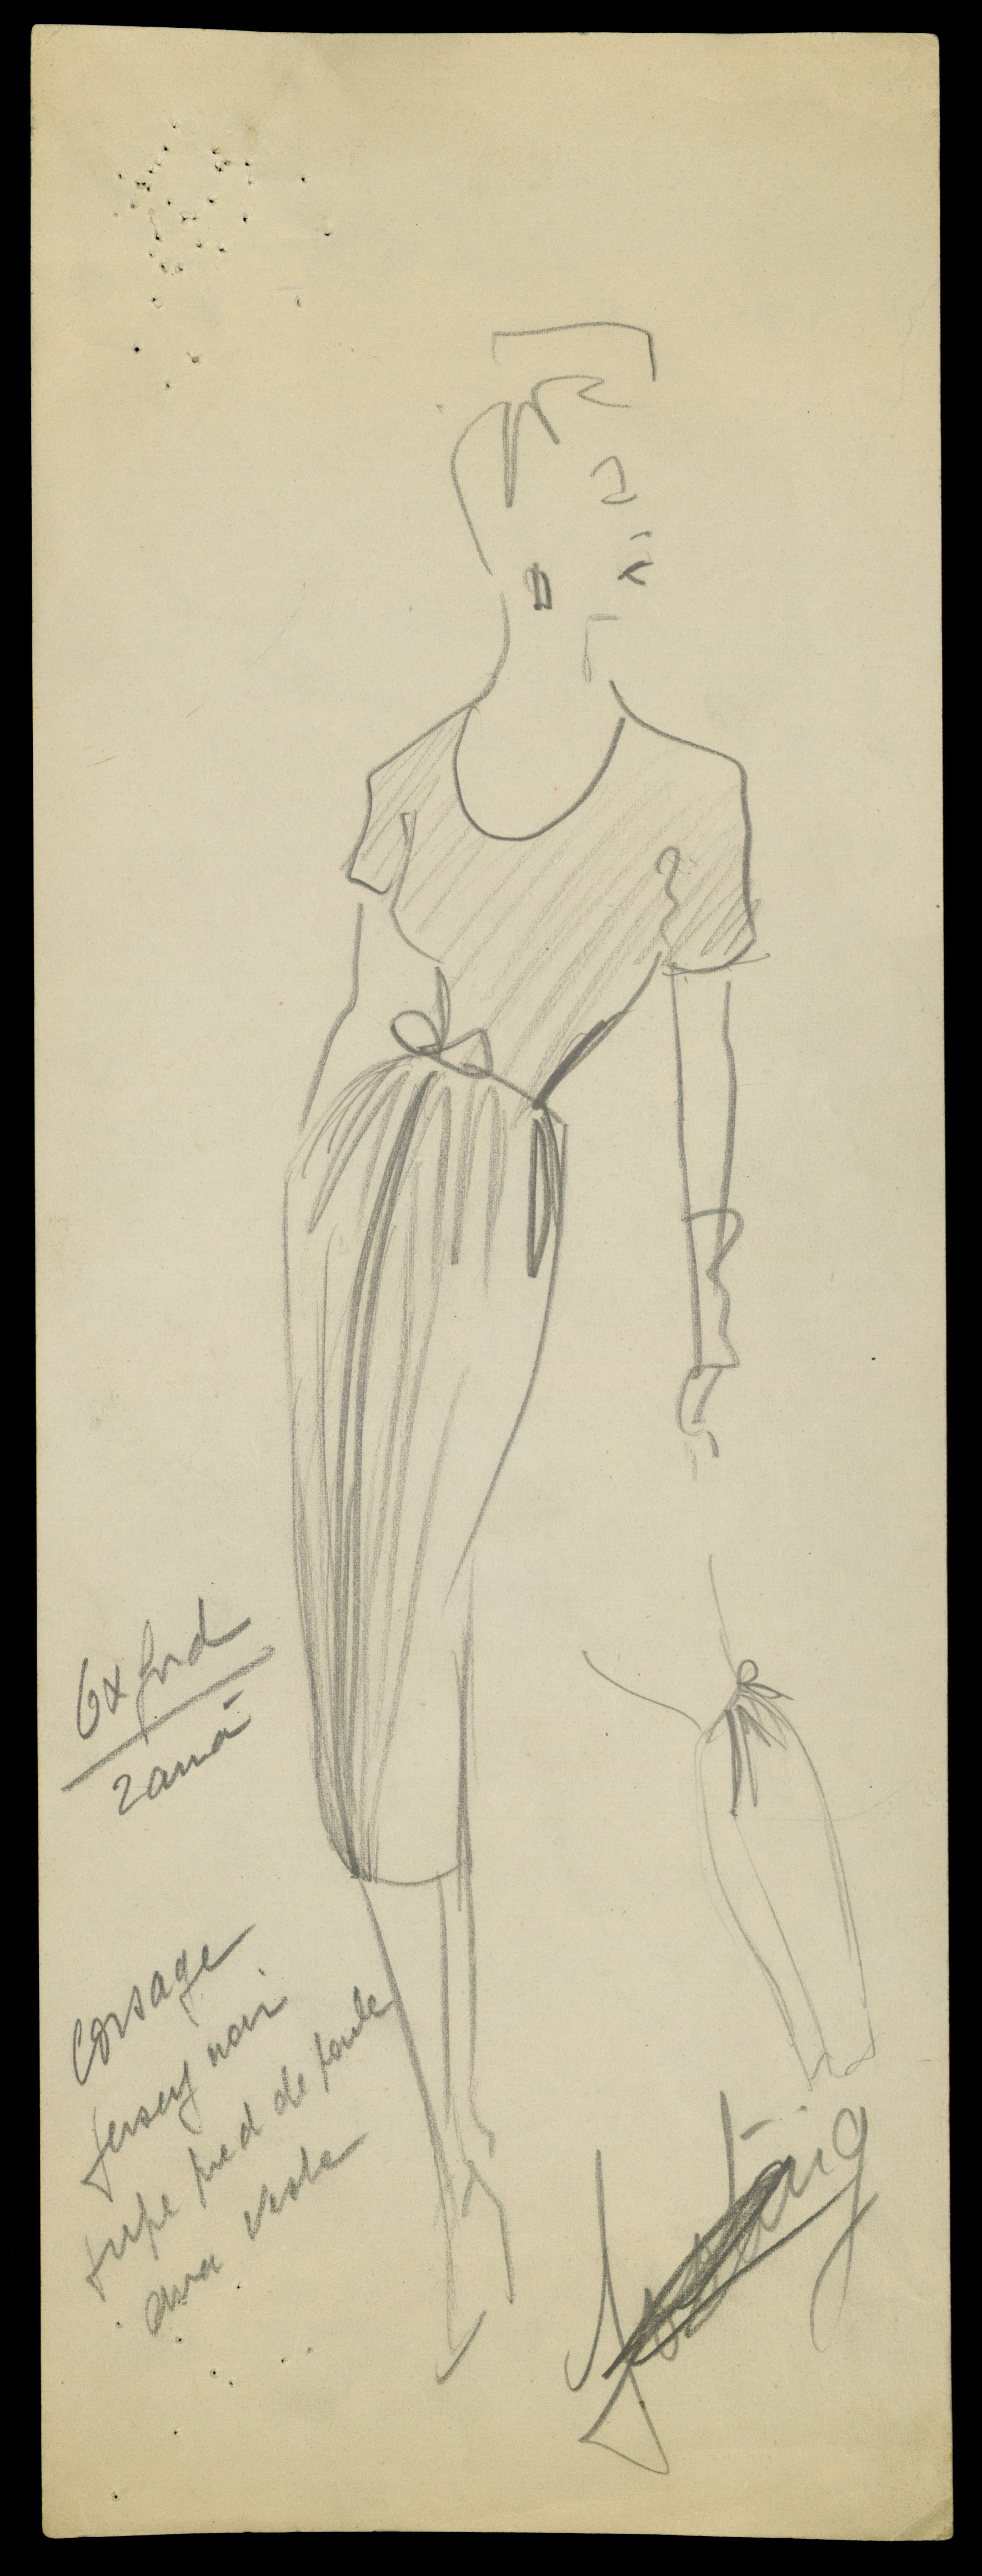 sketch-by-christian-dior-for-model-oxford-spring-summer-1947-haute-couture-collection–christian-dior